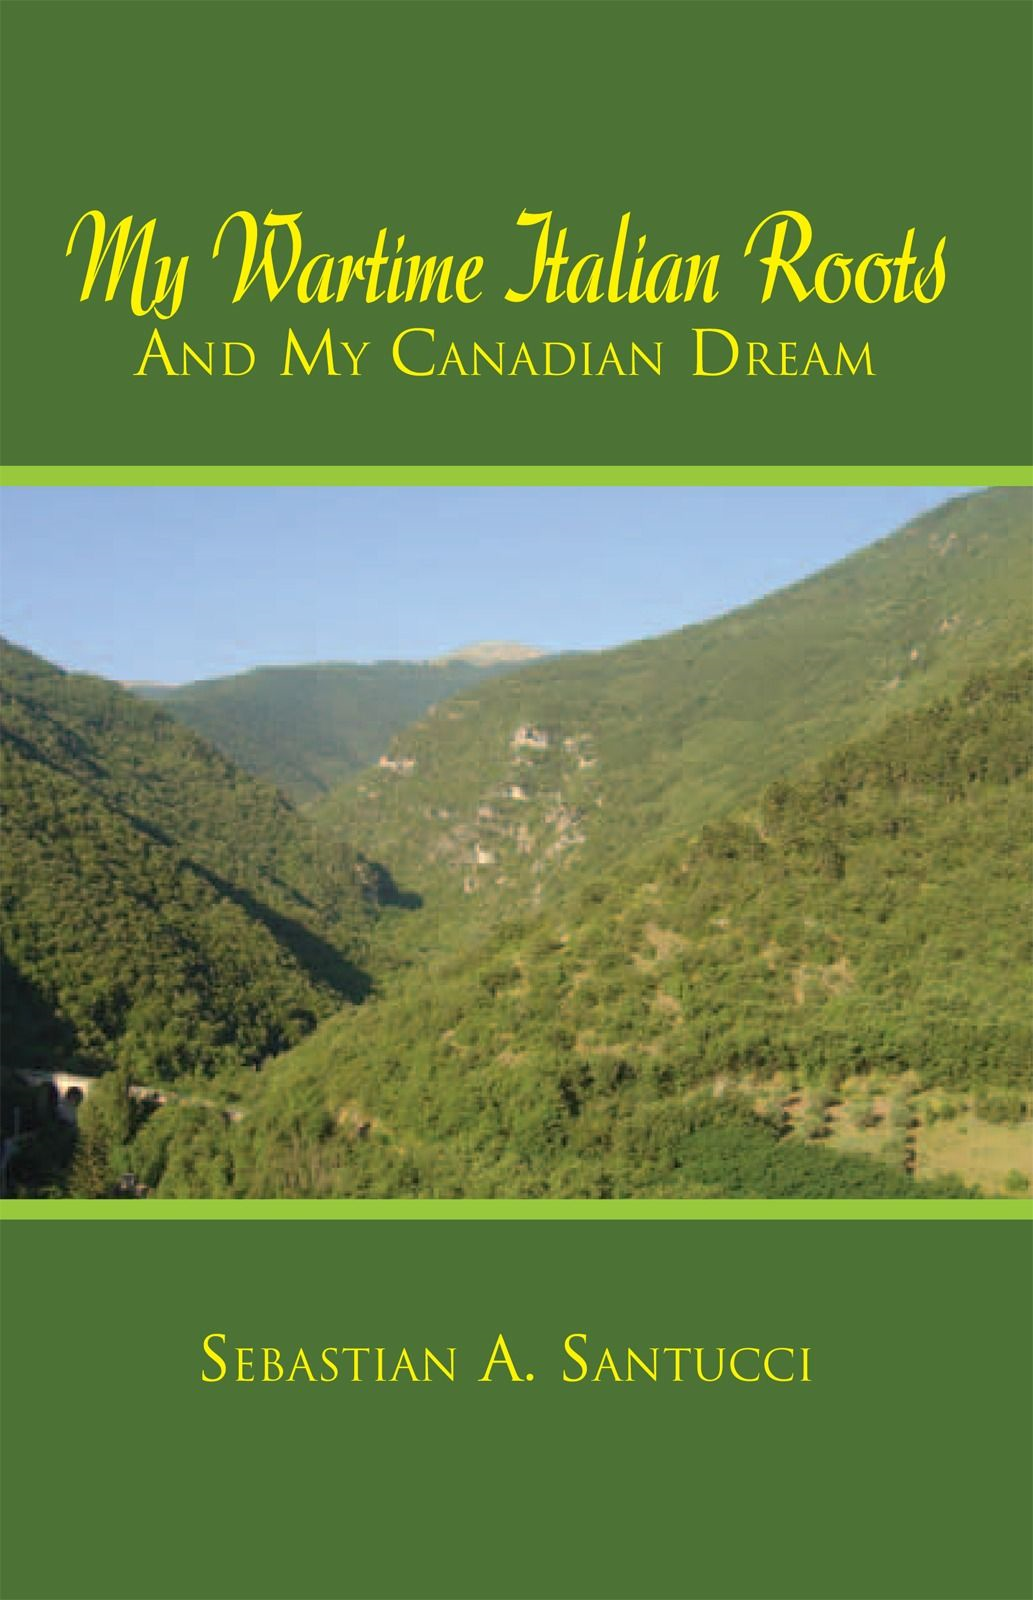 My Wartime Italian Roots and My Canadian Dream By: Sebastian A. Santucci